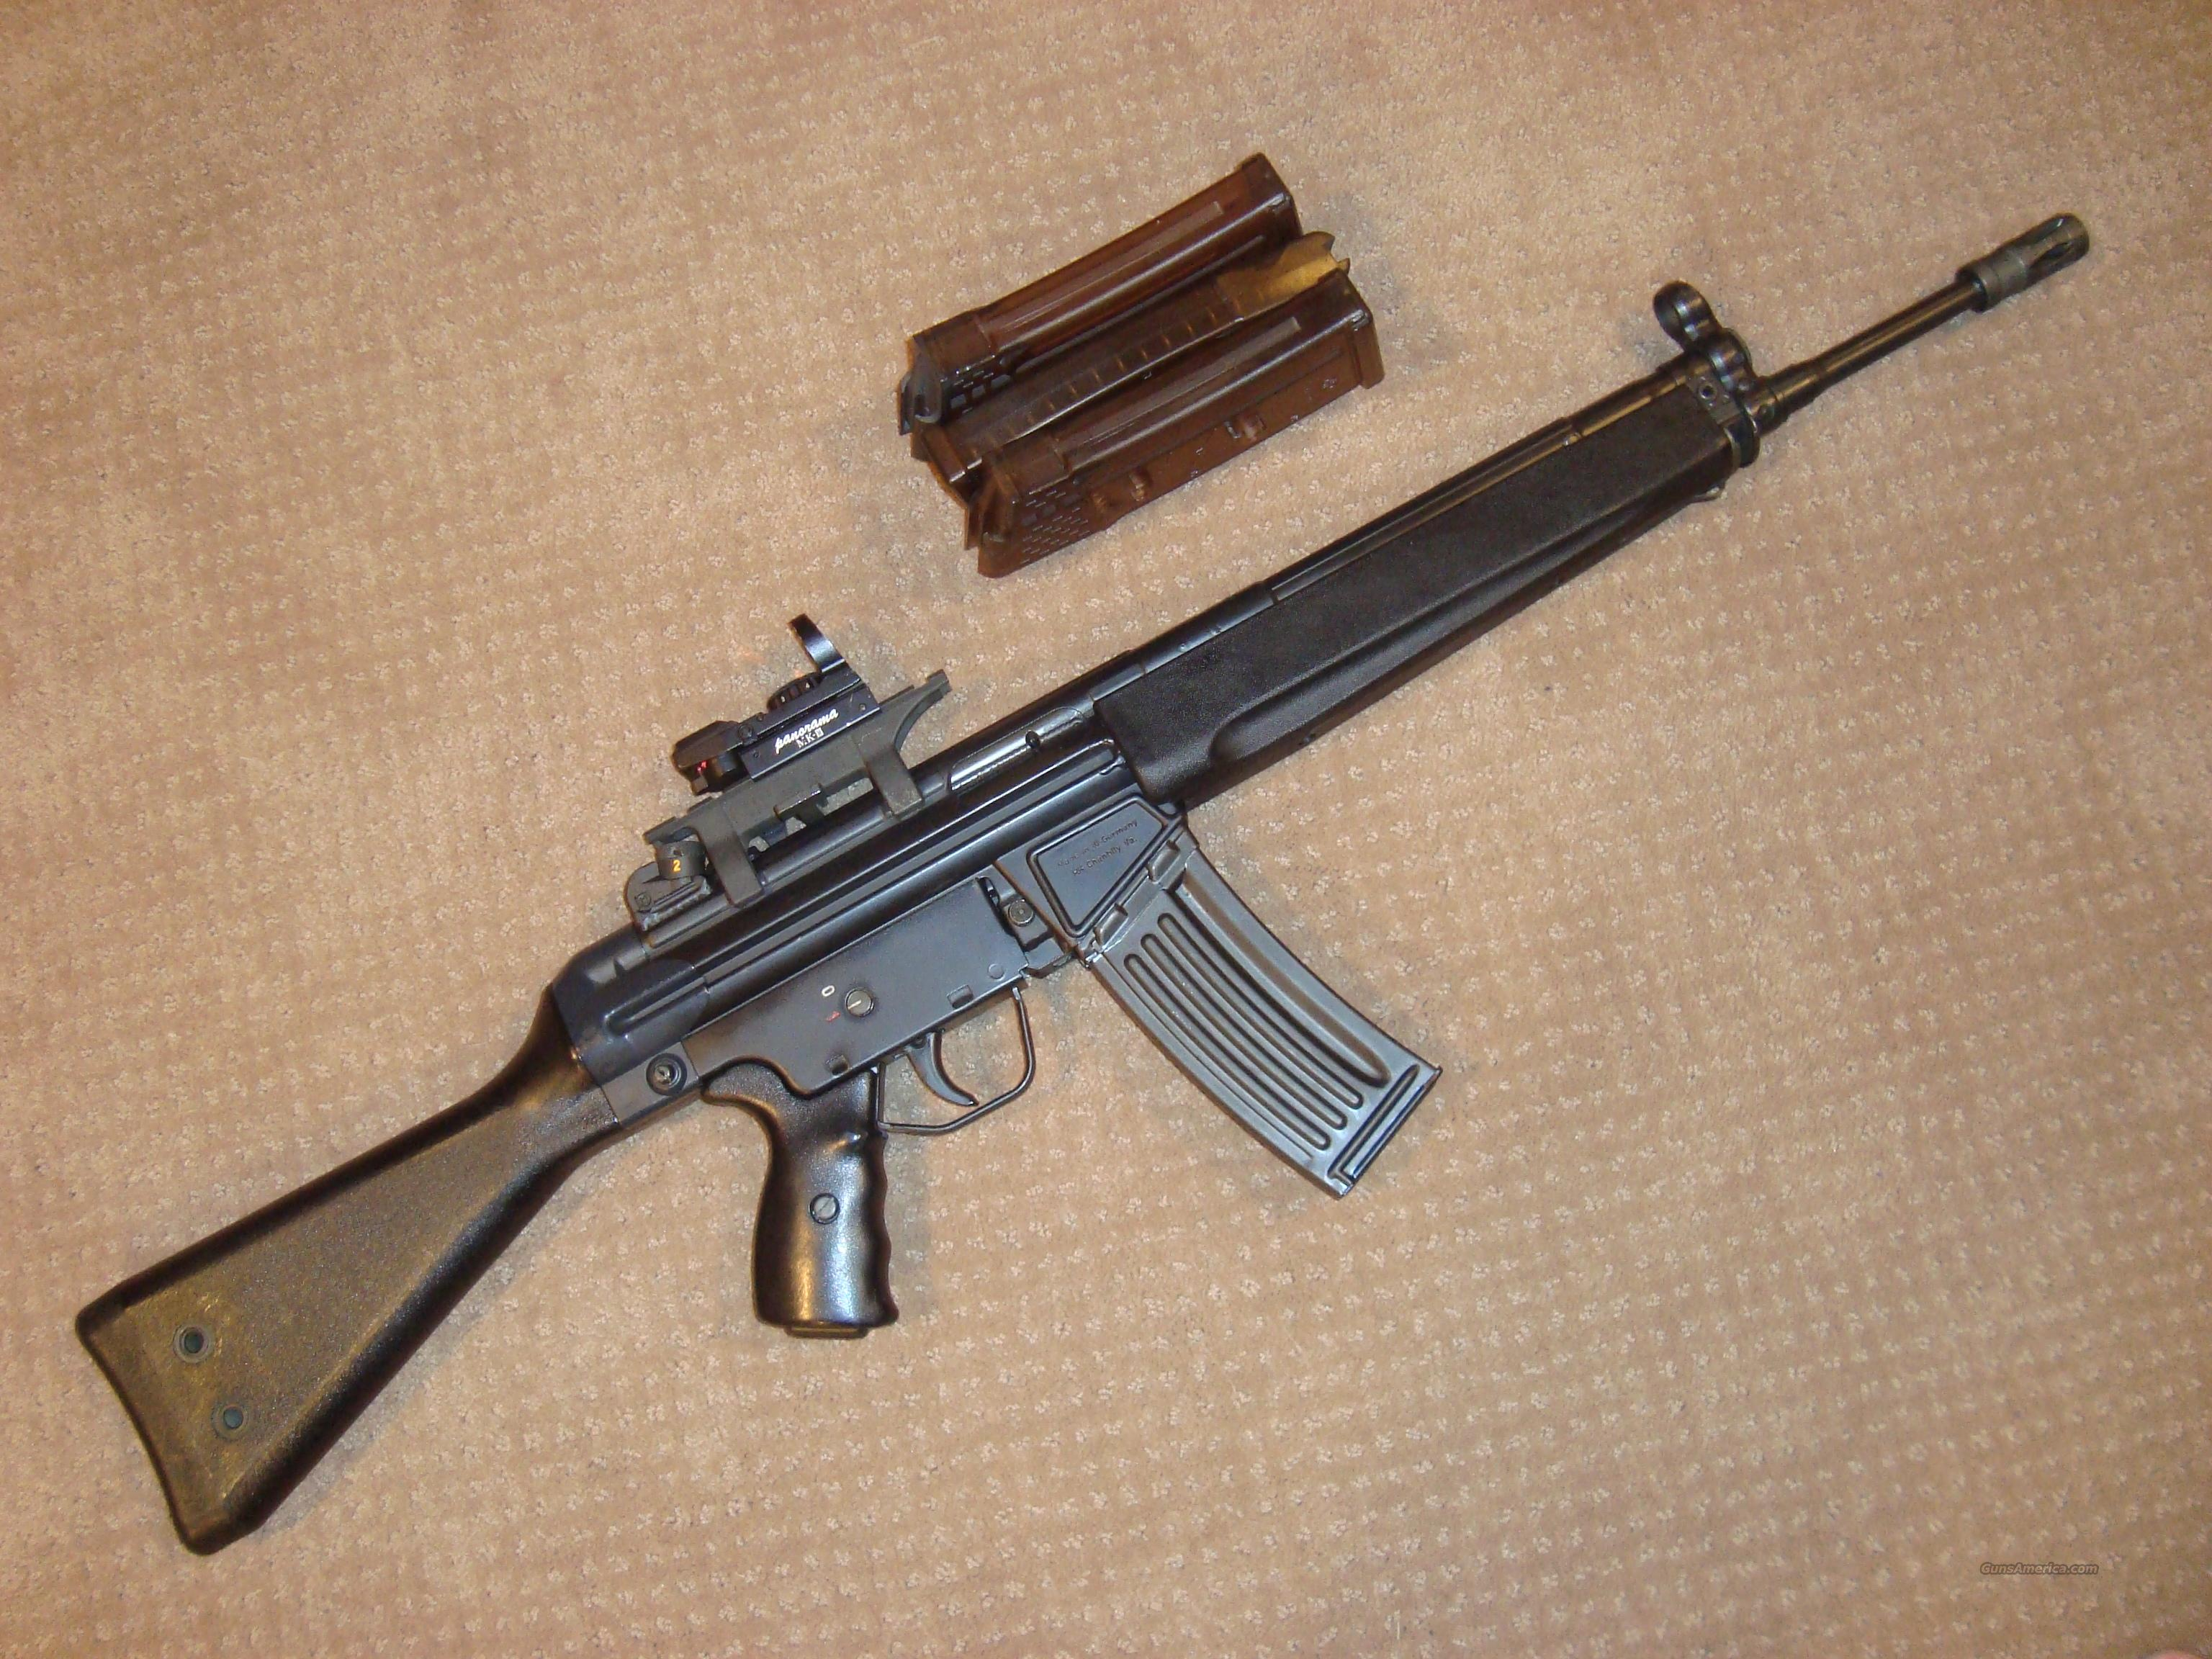 REDUCED $200!!   LIKE NEW HK 93 PRE-BAN WITH 4 MAGS, SCOPE WITH CLAW MOUNT  Guns > Rifles > Heckler & Koch Rifles > Tactical